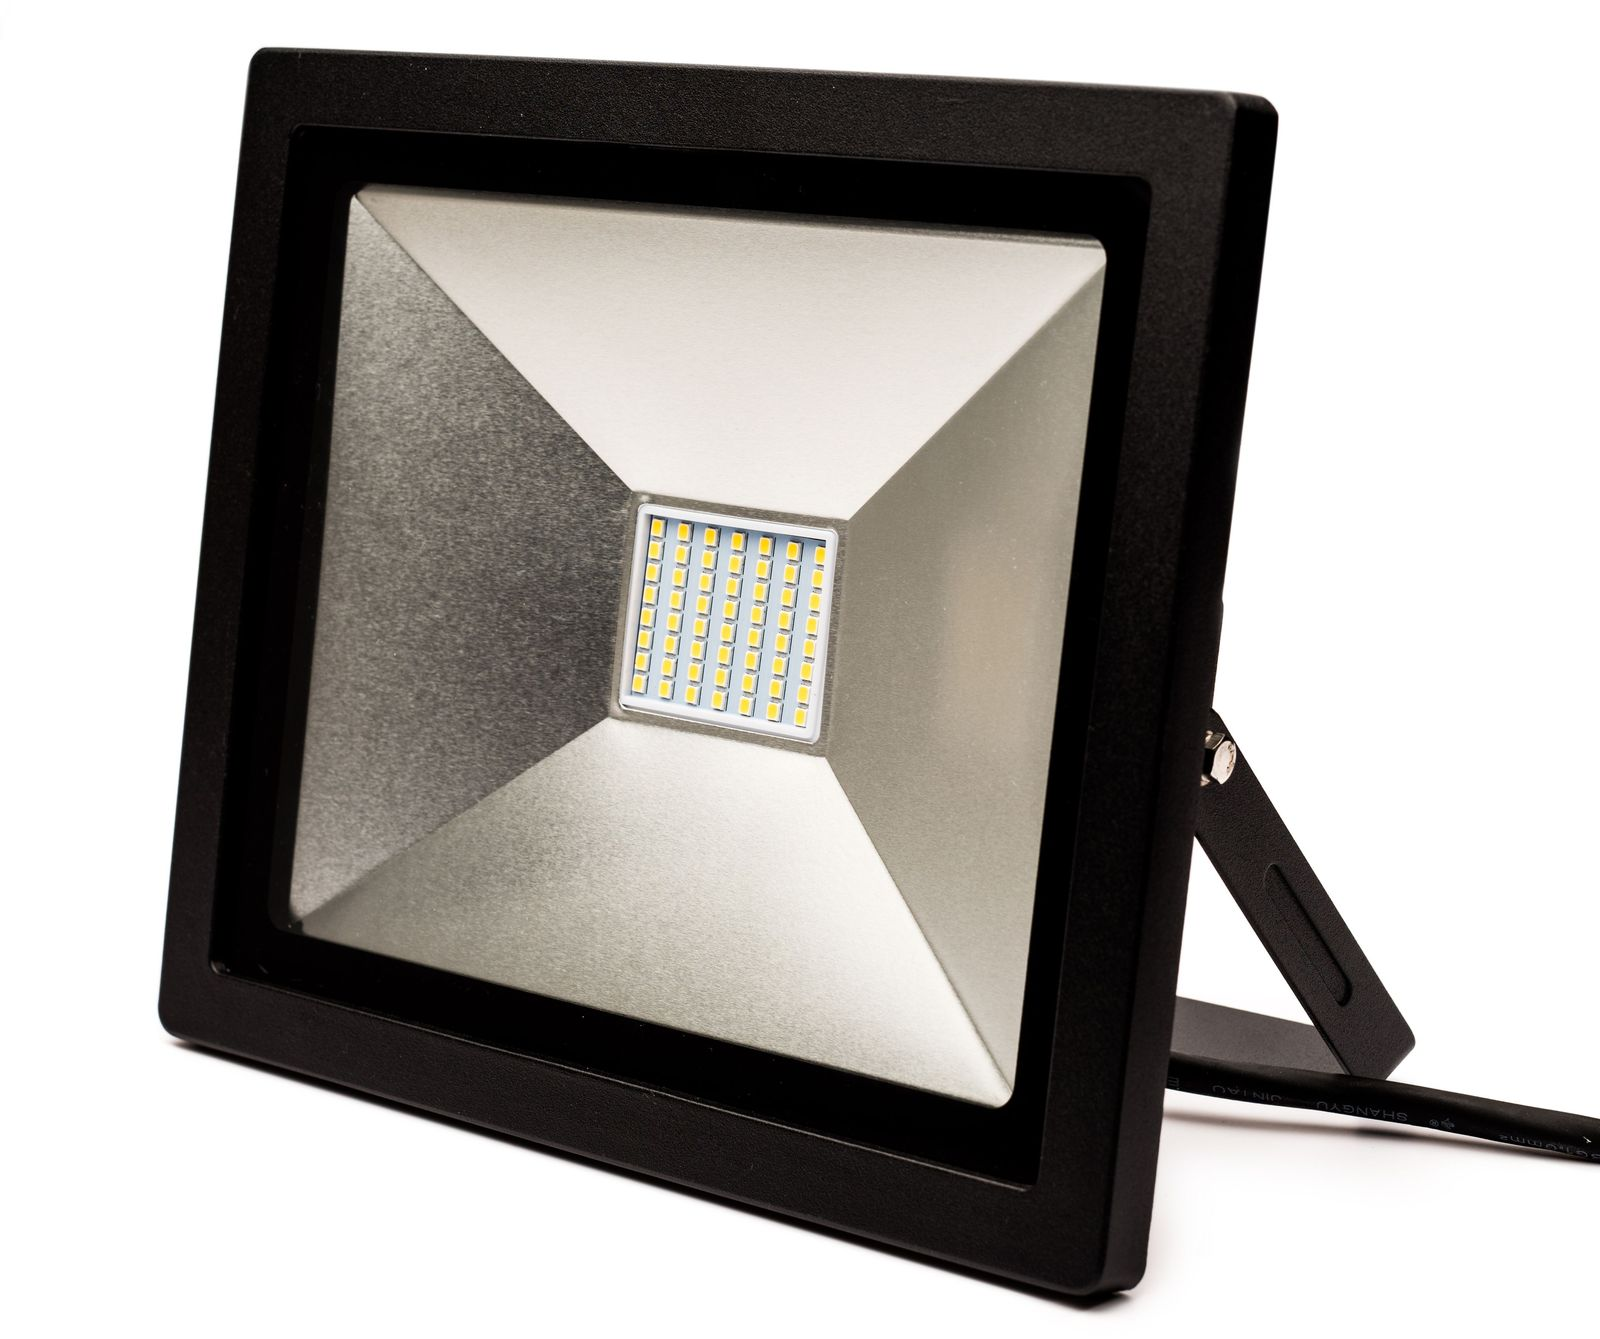 LED-valonheitin FTLight Slim Work, 30W, IP44, 2400lm, 4500K, musta